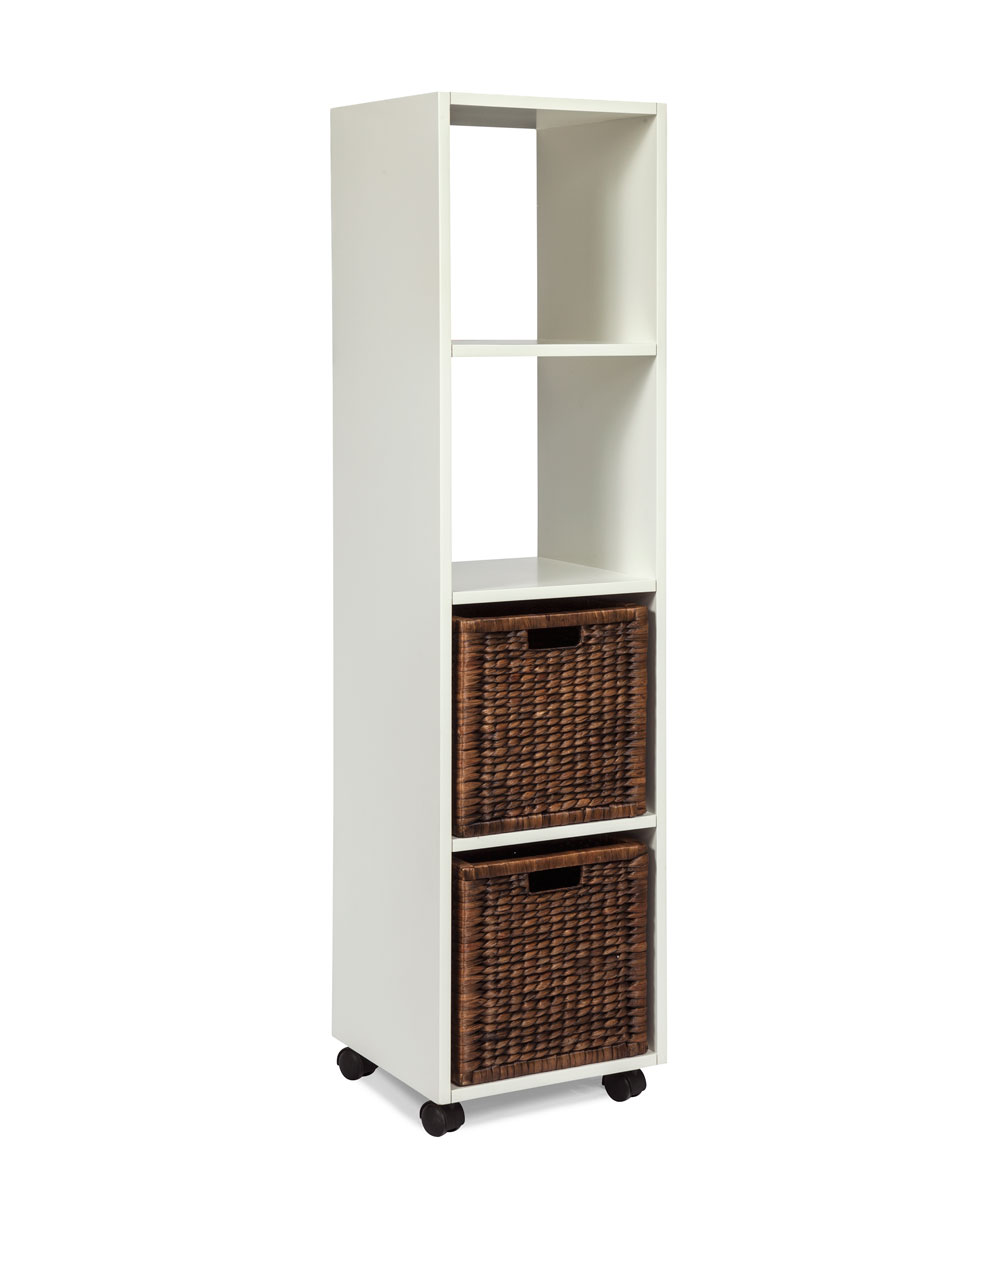 rustic backs images cabinet shelves cubical on mango best book pinterest inspiration contemporary open rolling bookcase slcfurniture wood back